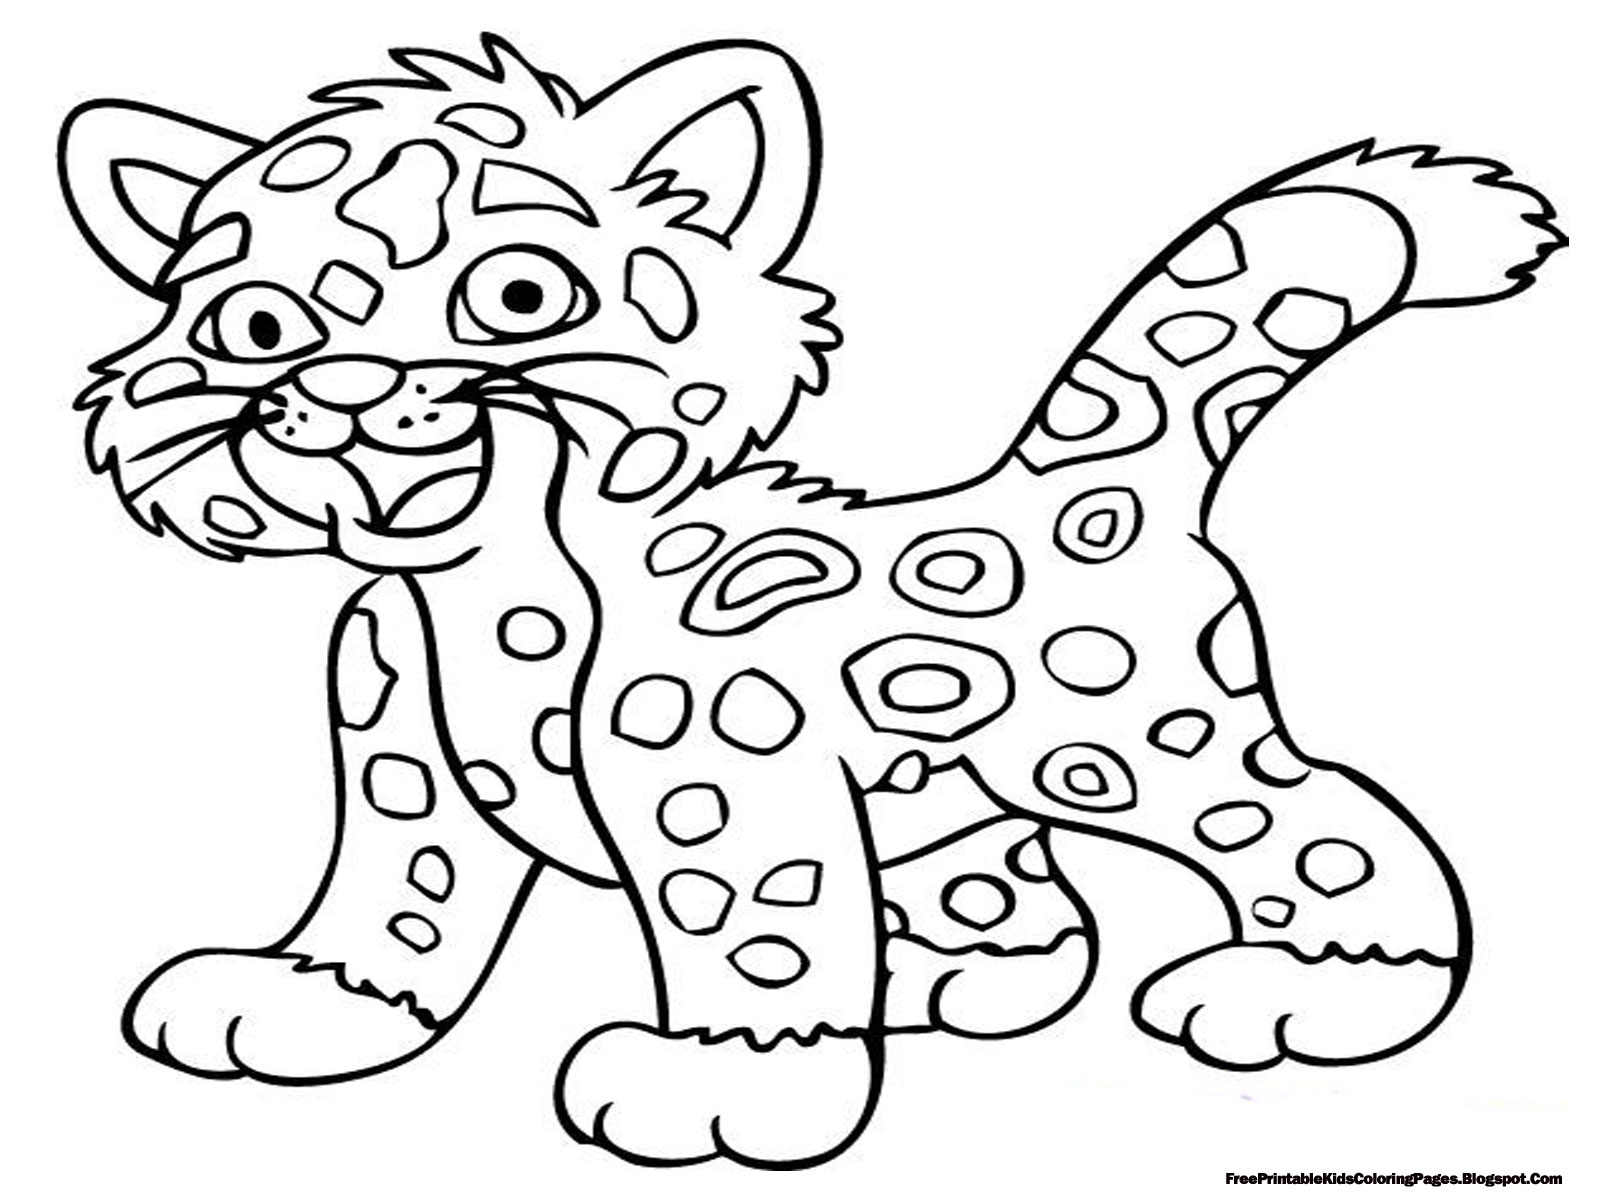 1600x1200 Modest Free Coloring Sheet Nice Kids Coloring